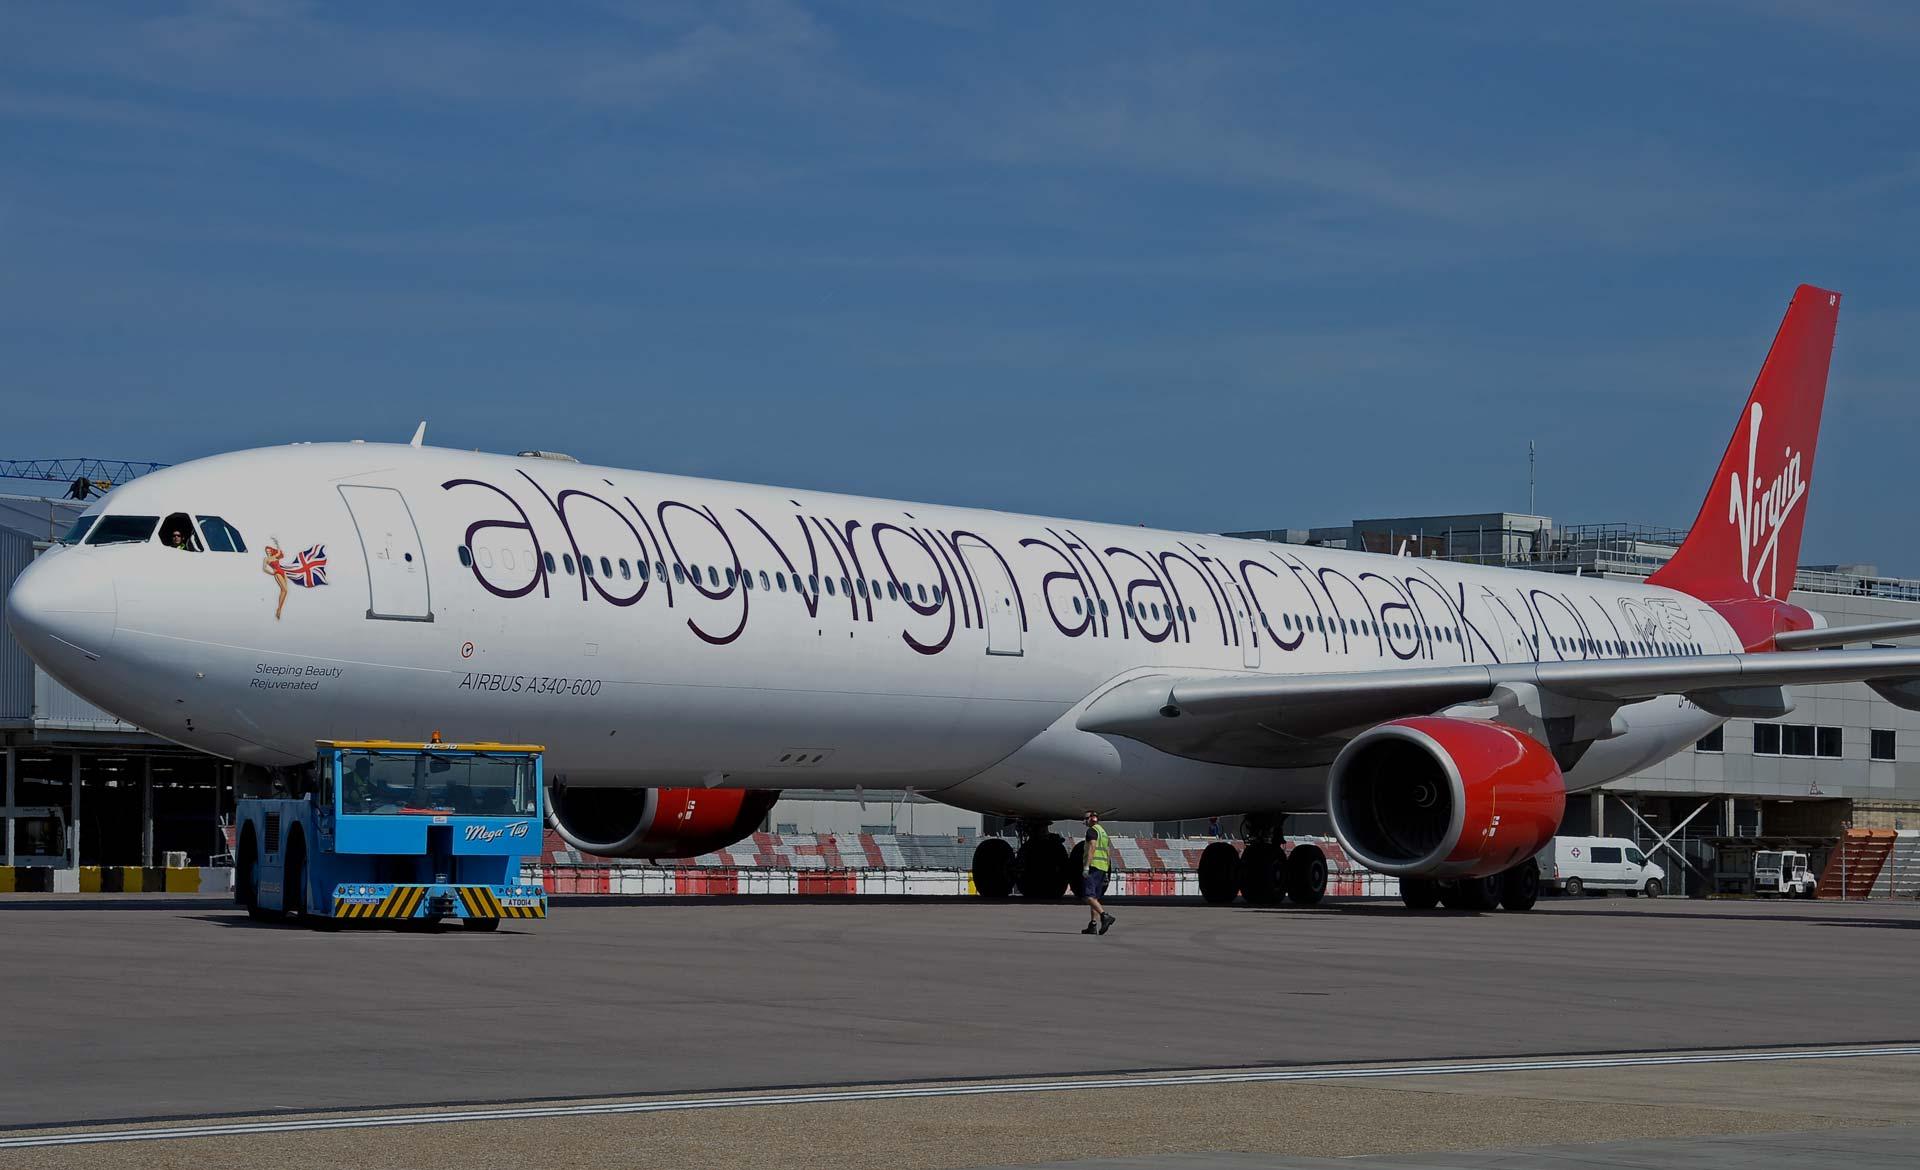 cobalt-ground-solutions-virgin-atlantic-sleeping-beauty-a340-600